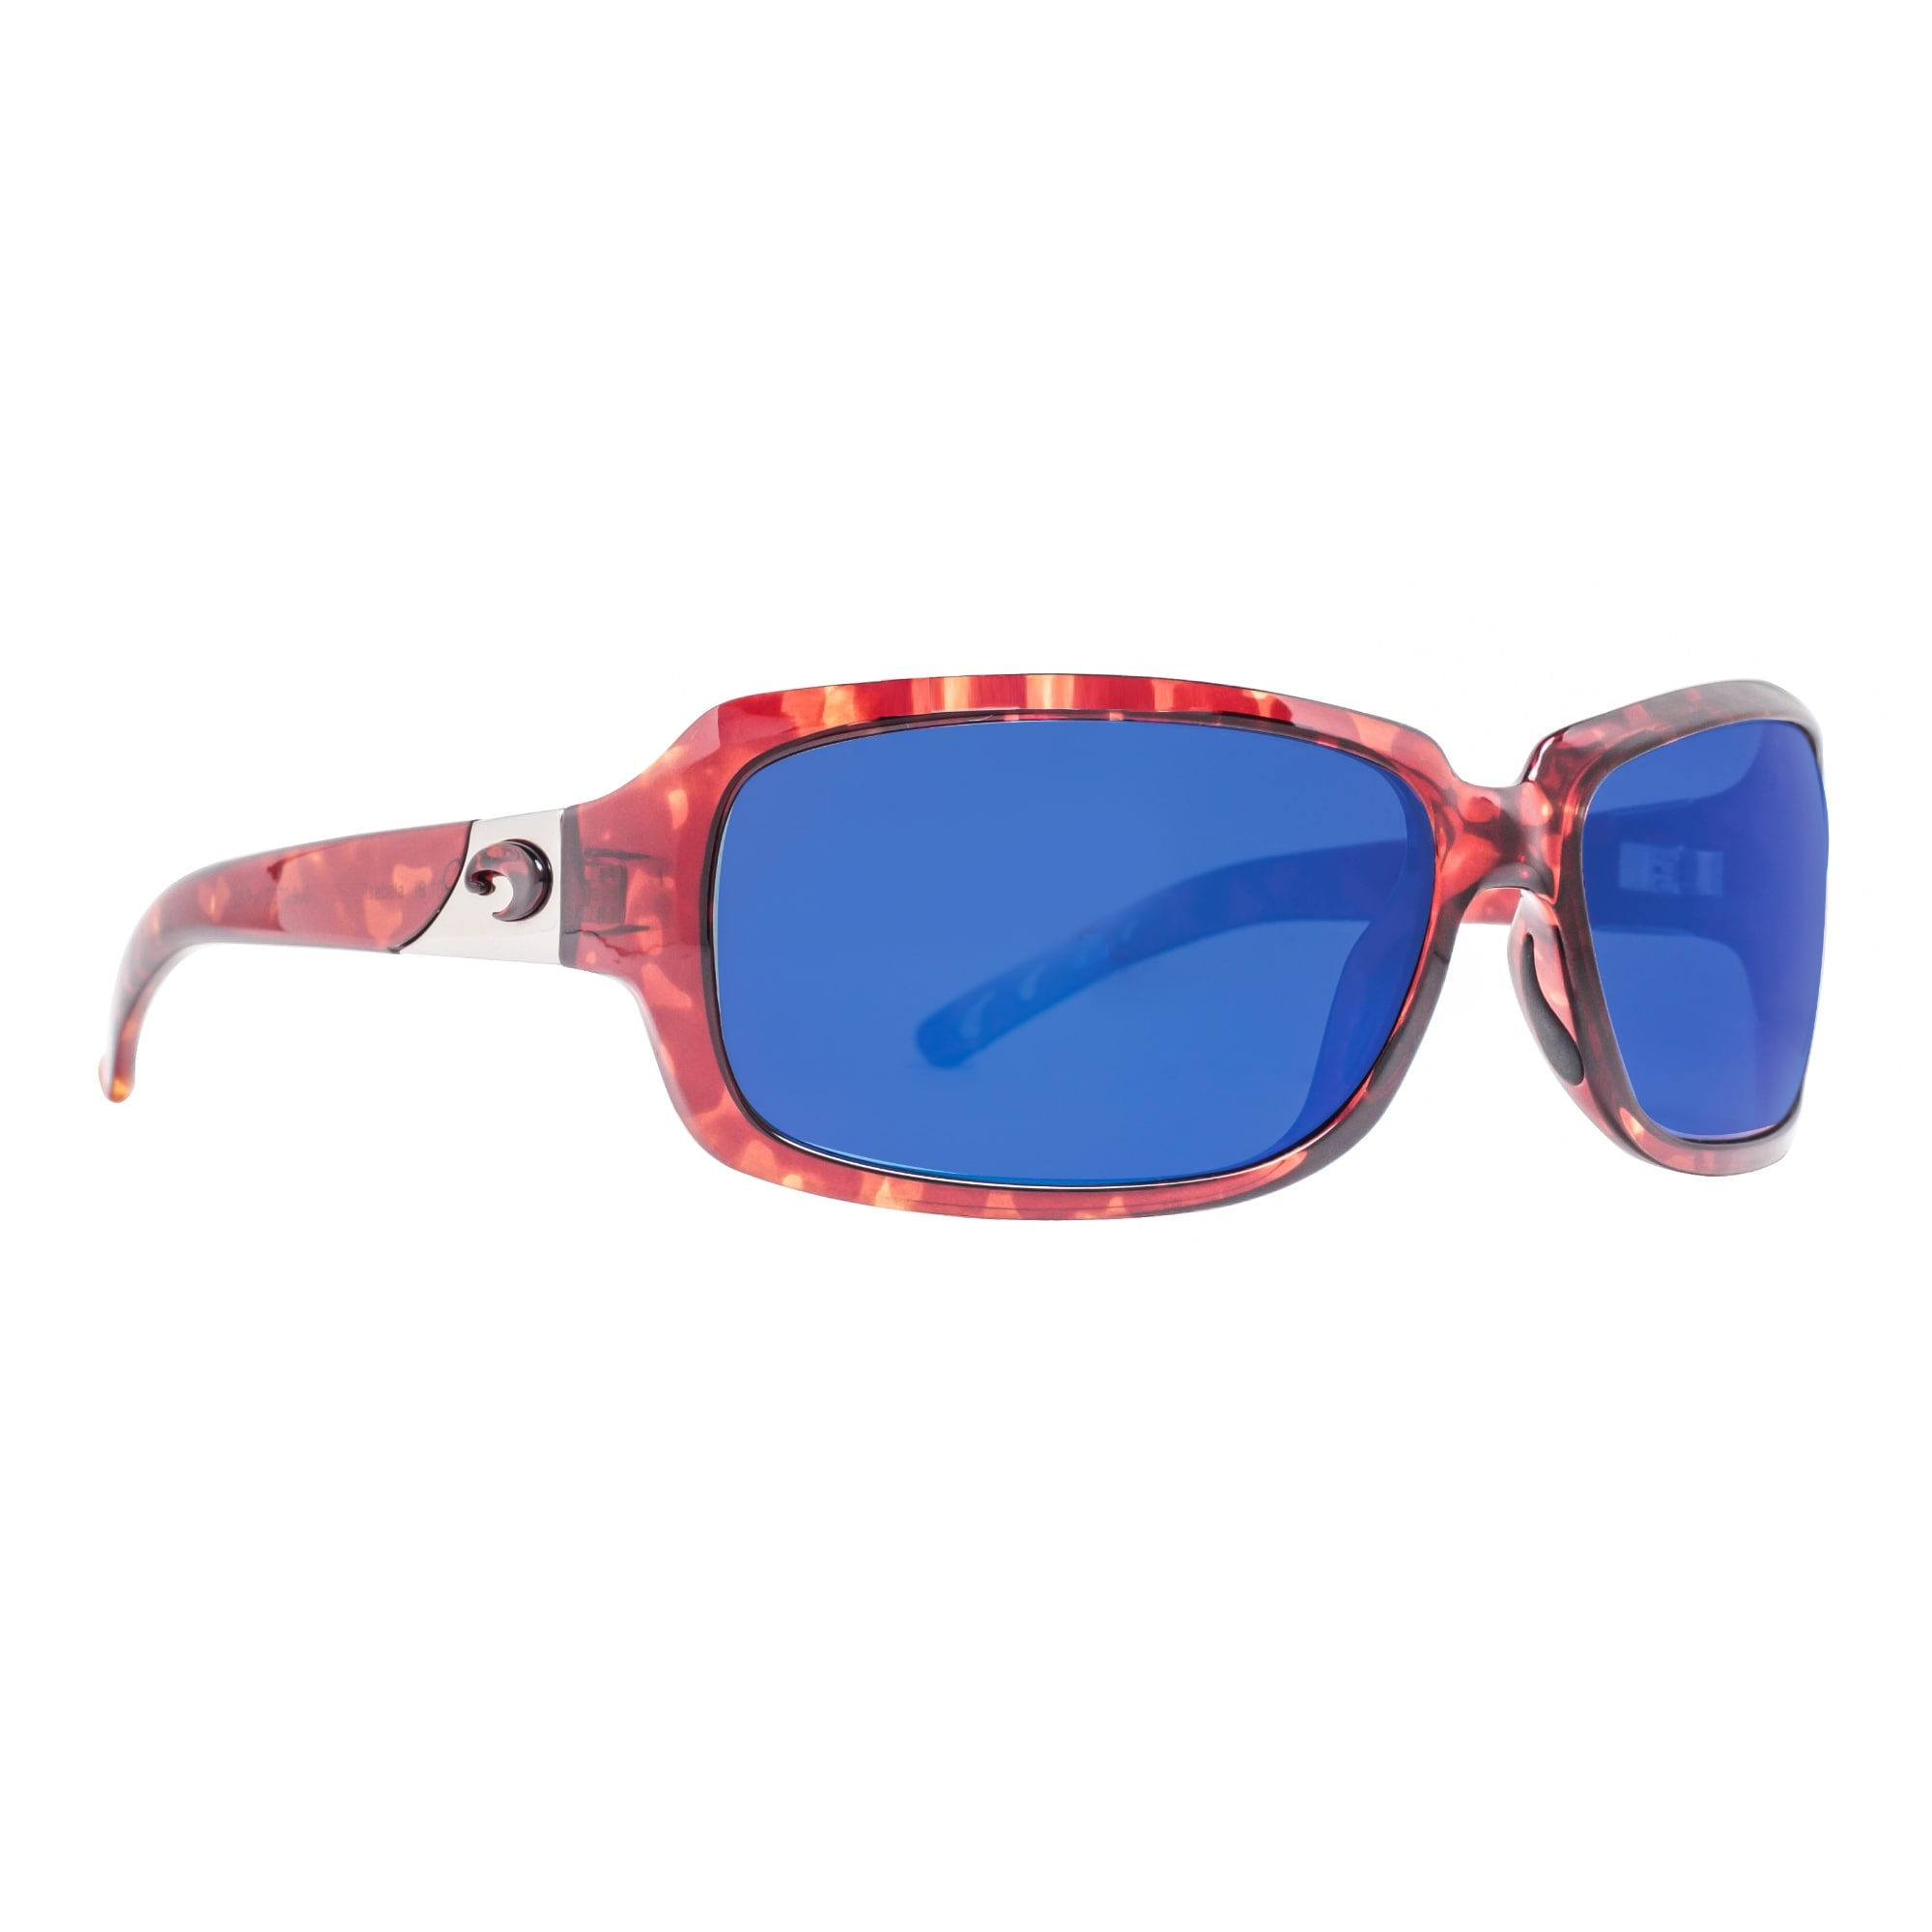 dce48388cd Shop Costa Del Mar Isabela IB10OBMP Tortoise Brown 580P Blue Mirror Wrap  Sunglasses - tortoise brown - 63mm-17mm-124mm - Free Shipping Today -  Overstock.com ...